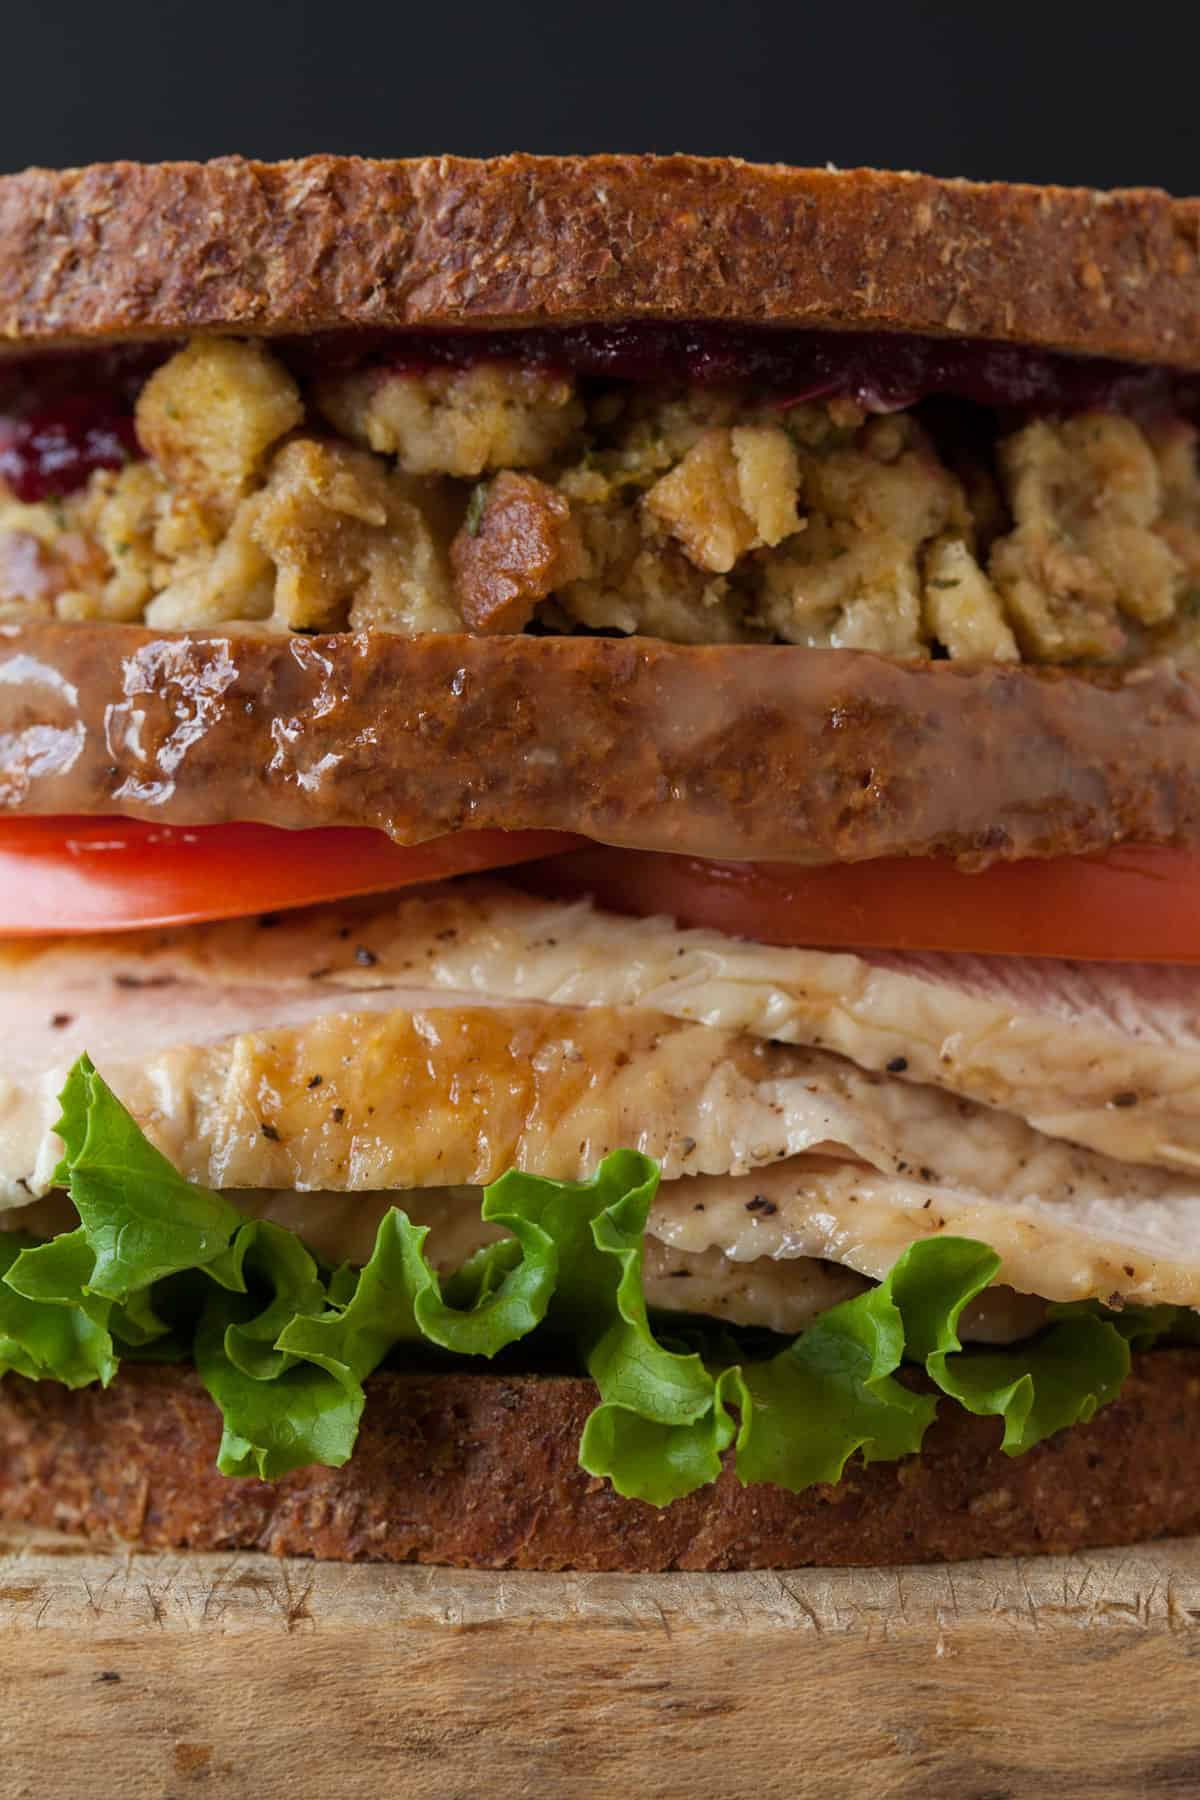 Thanksgiving turkey sandwichwith a moist maker spoon fork bacon thanksgiving turkey sandwich recipe with a moist maker forumfinder Choice Image